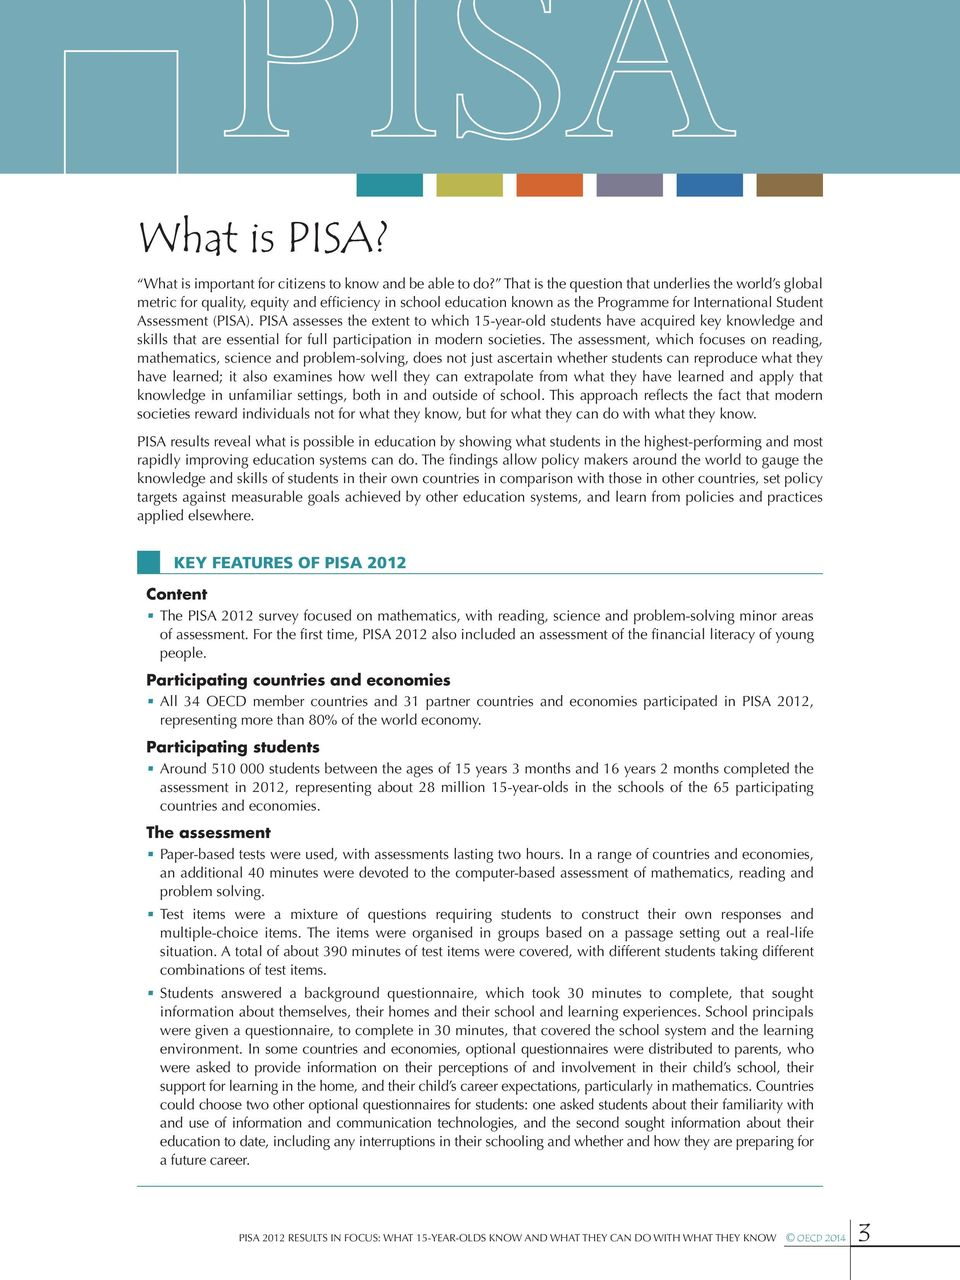 PISA assesses the extent to which 15-year-old students have acquired key knowledge and skills that are essential for full participation in modern societies.